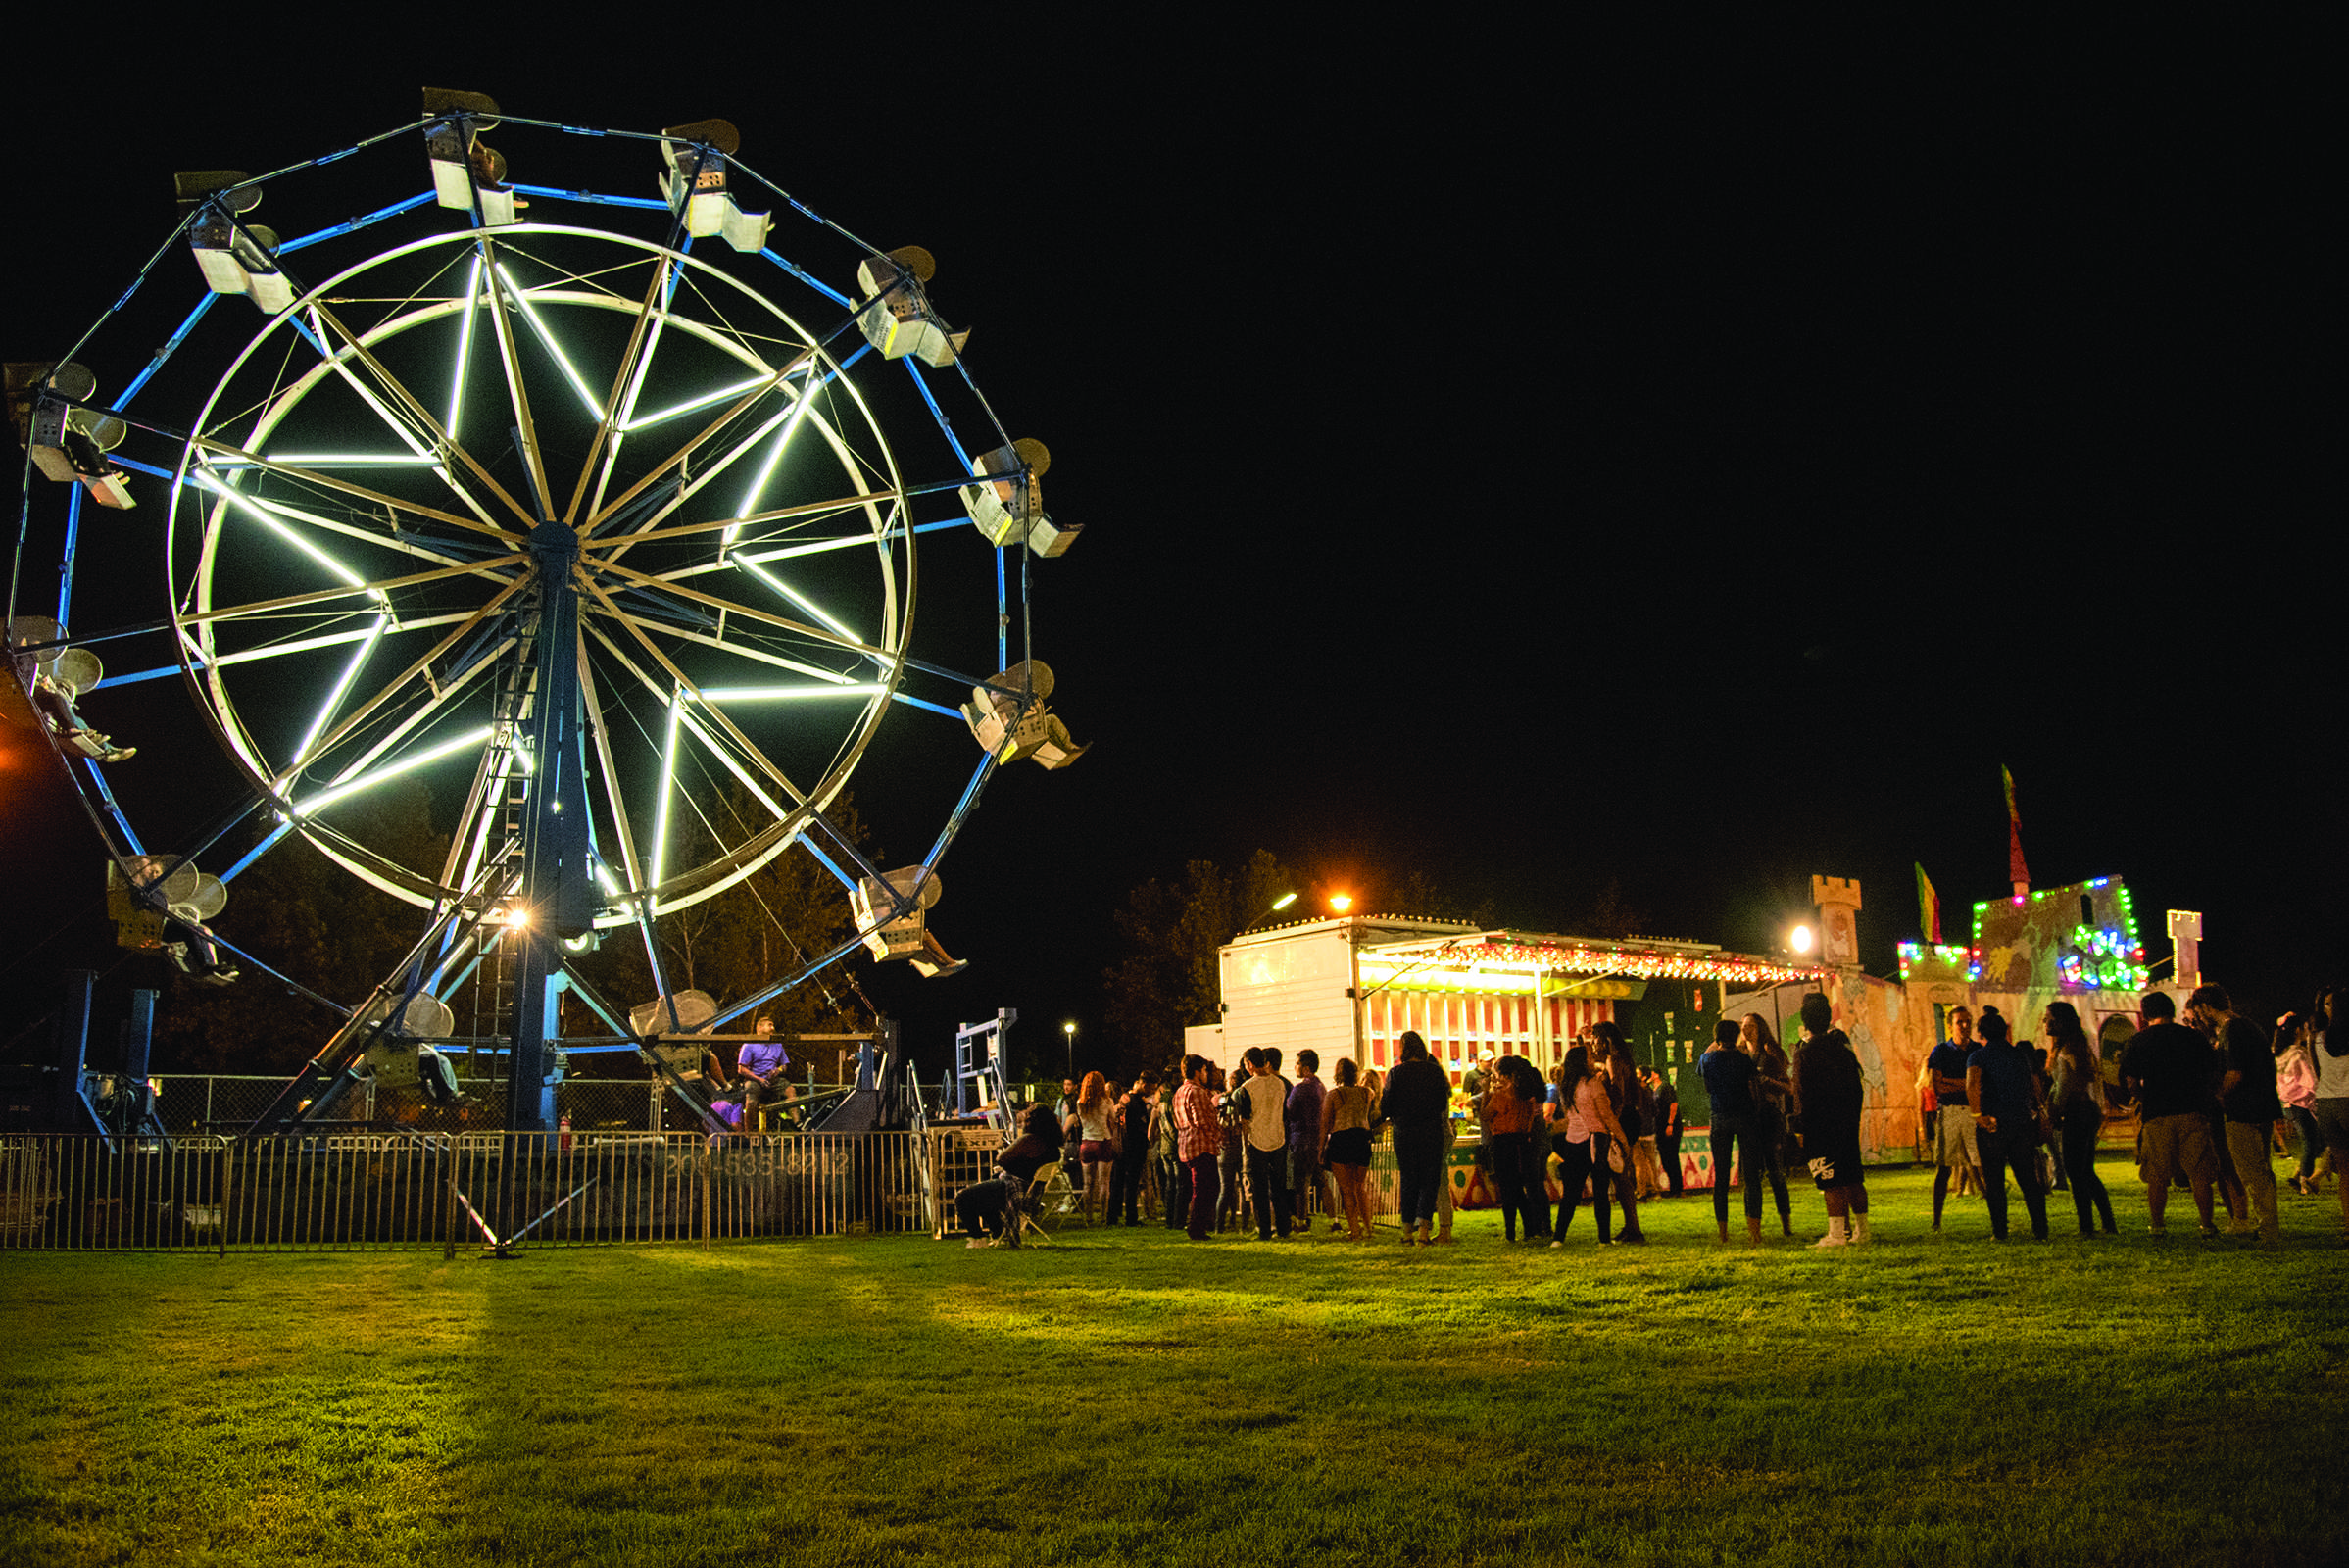 Photo by Simer Khurana/TheRunner. One of the many attractions included was the Ferris Wheel. Students were happy to line up and experience a carnival classic.